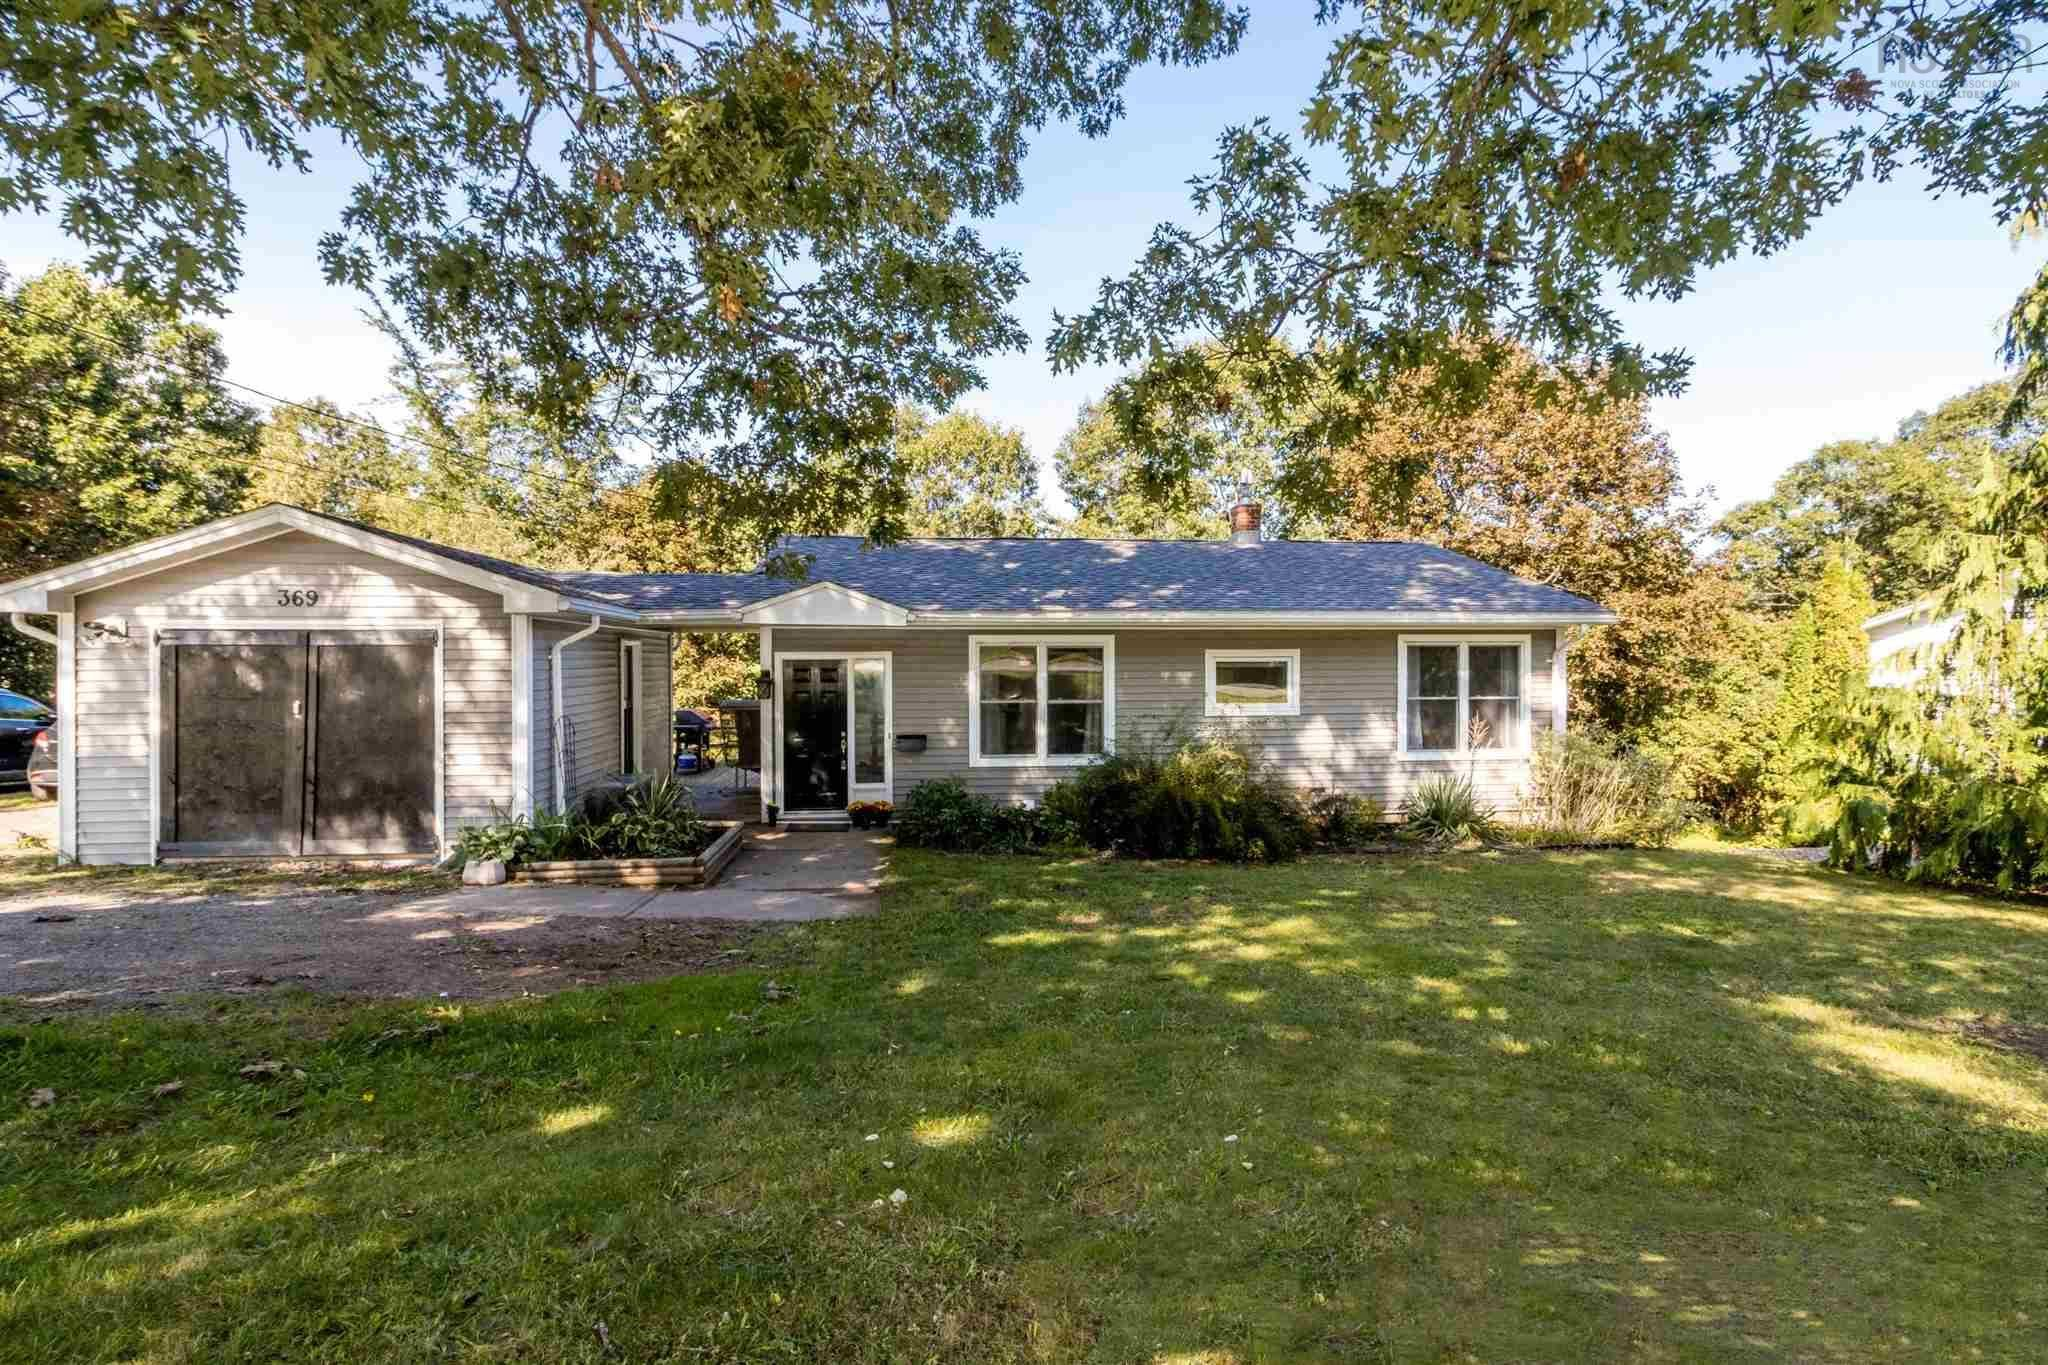 Main Photo: 369 Park Street in Kentville: 404-Kings County Residential for sale (Annapolis Valley)  : MLS®# 202124542